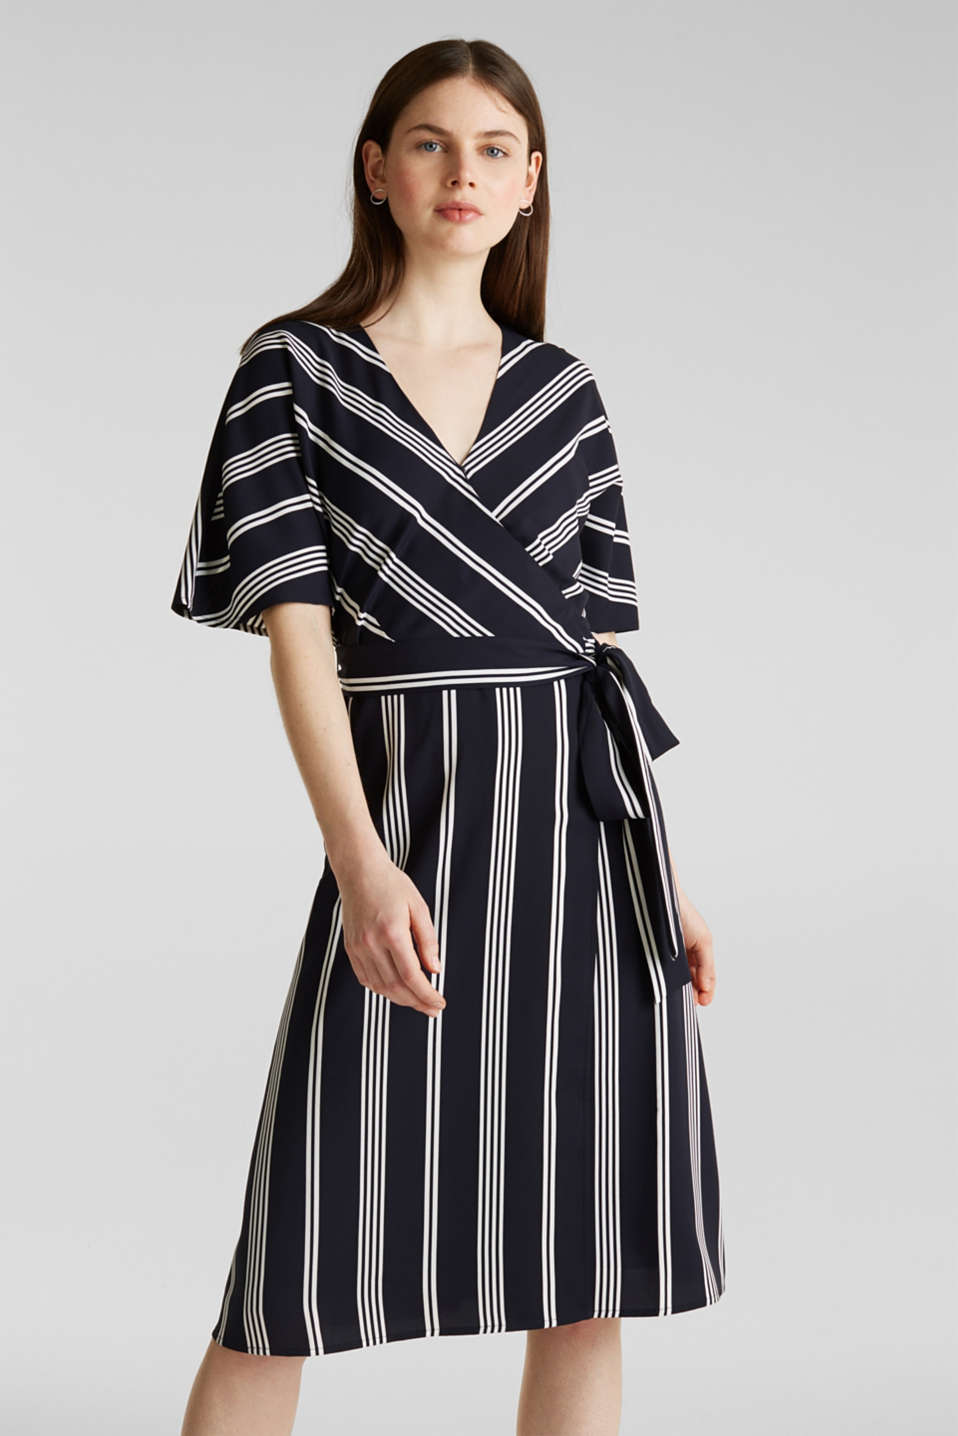 Esprit - Woven dress in a wrap-over look, recycled